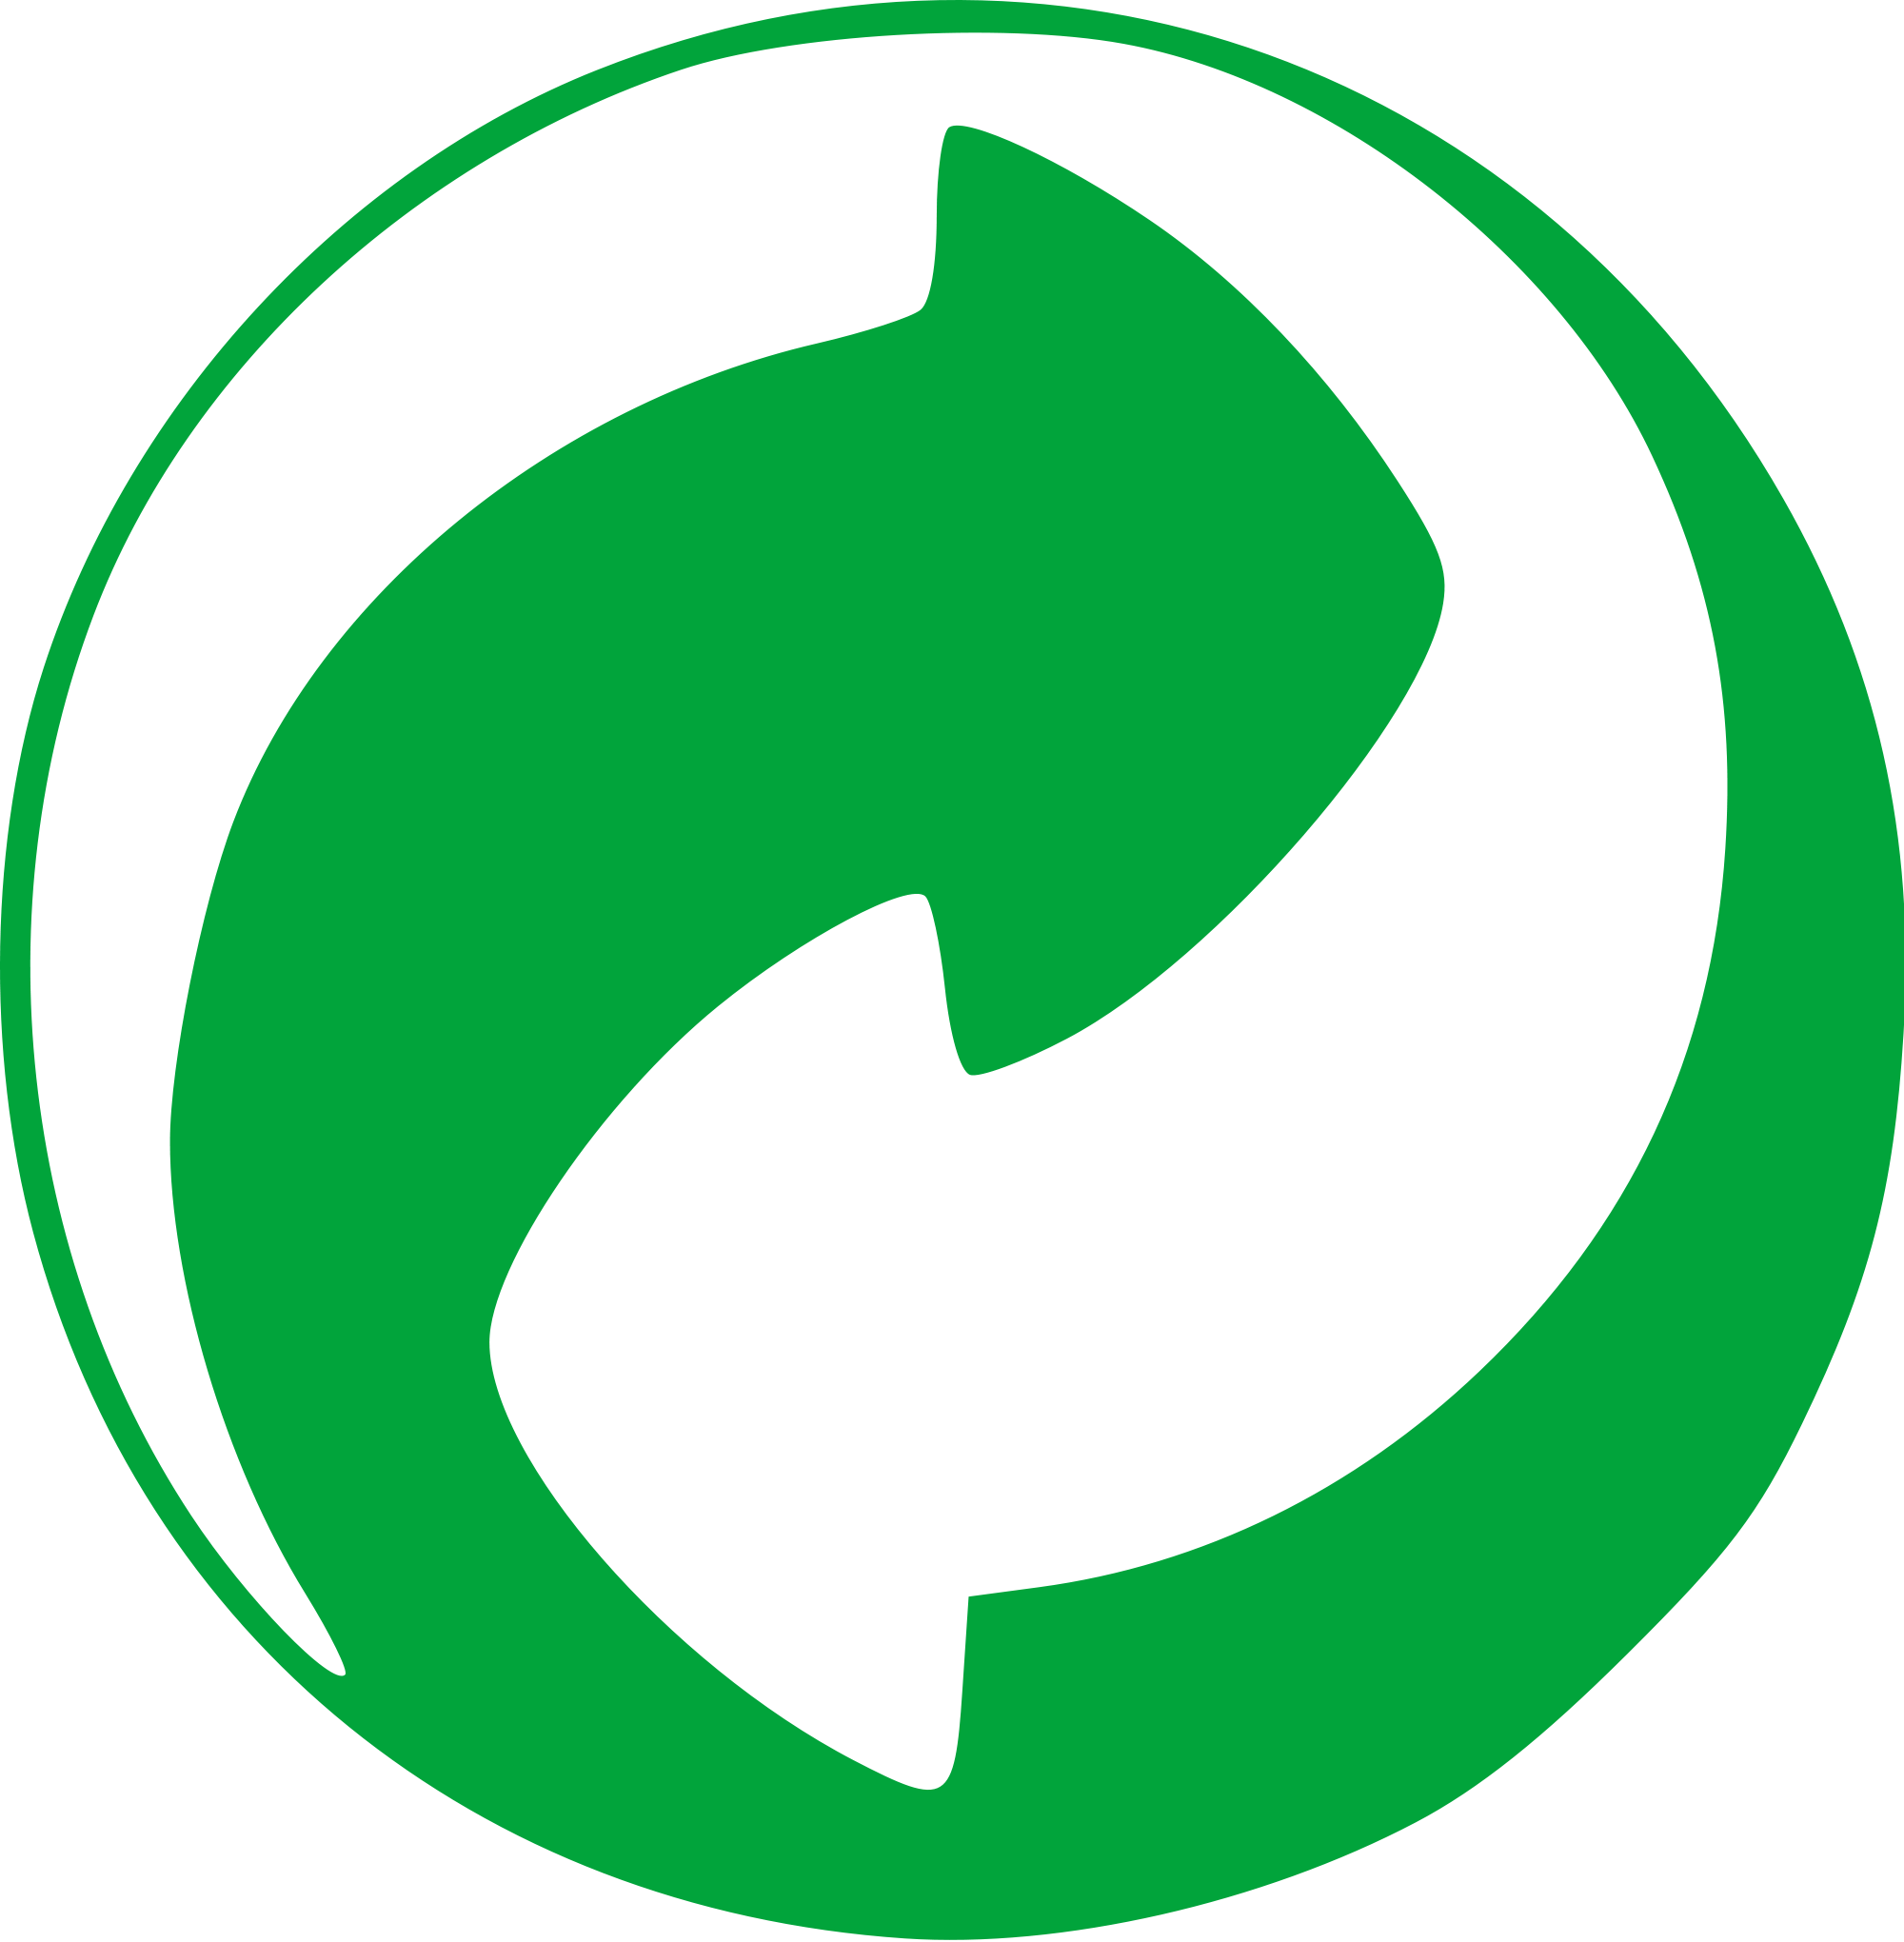 Trail clipart line dot. Green symbol images meaning